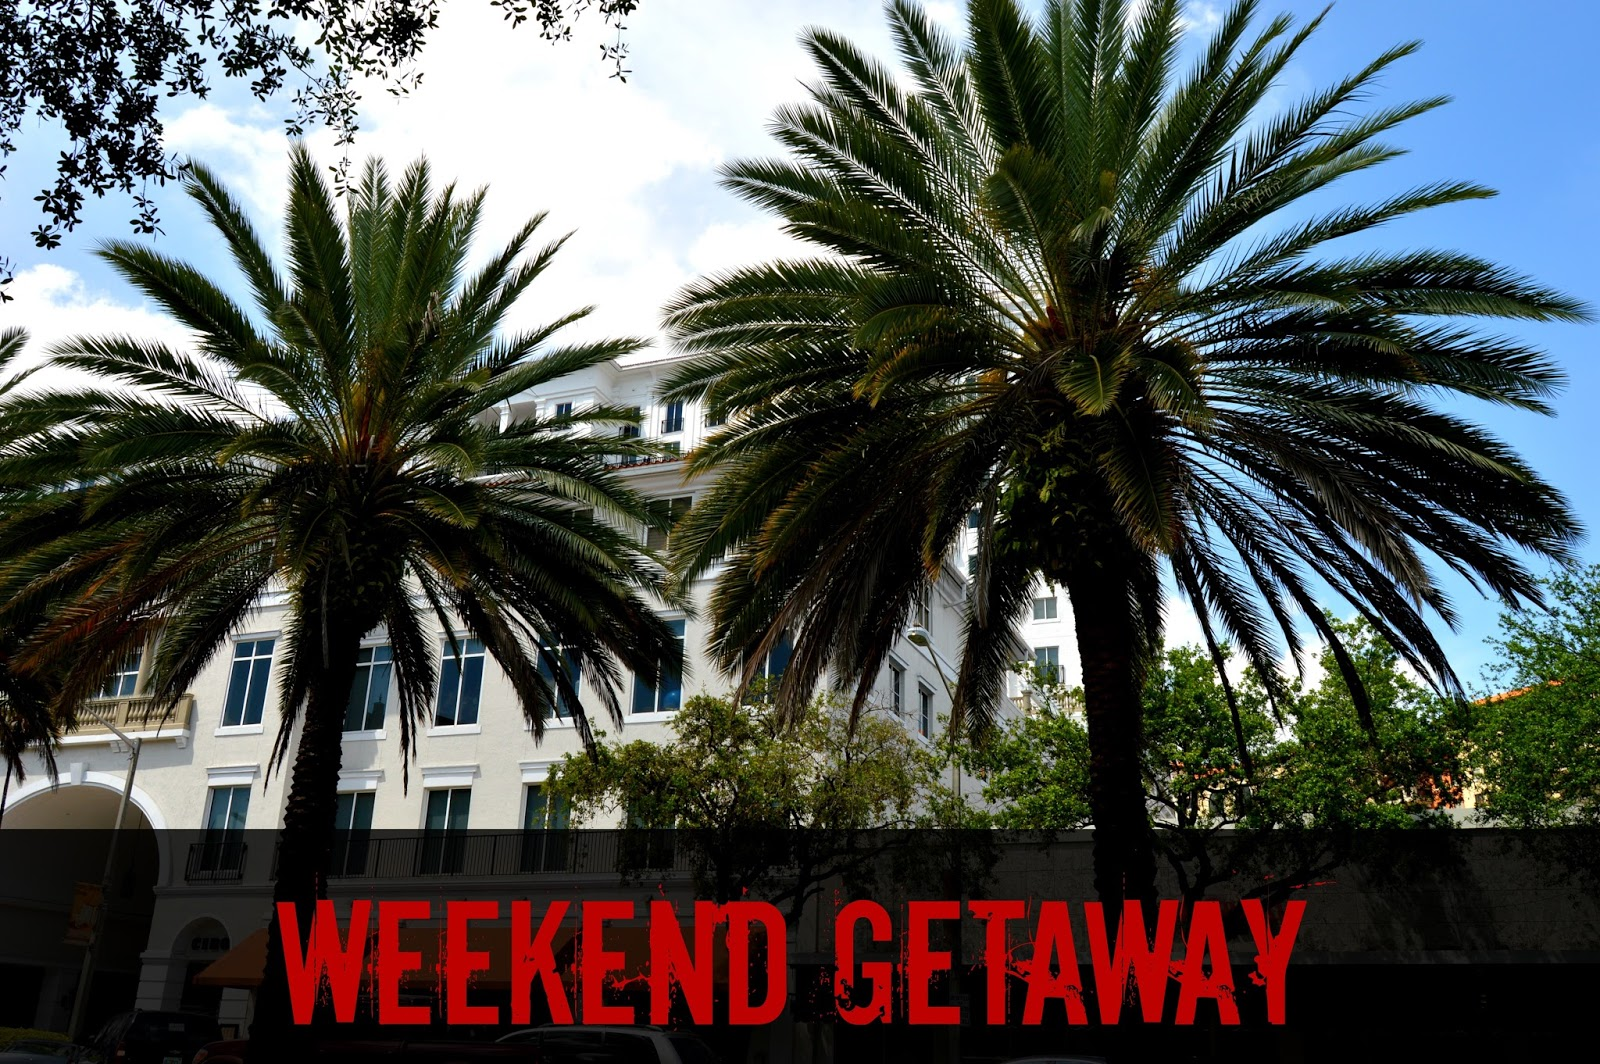 Martinis bikinis road trip for Weekend getaway from miami